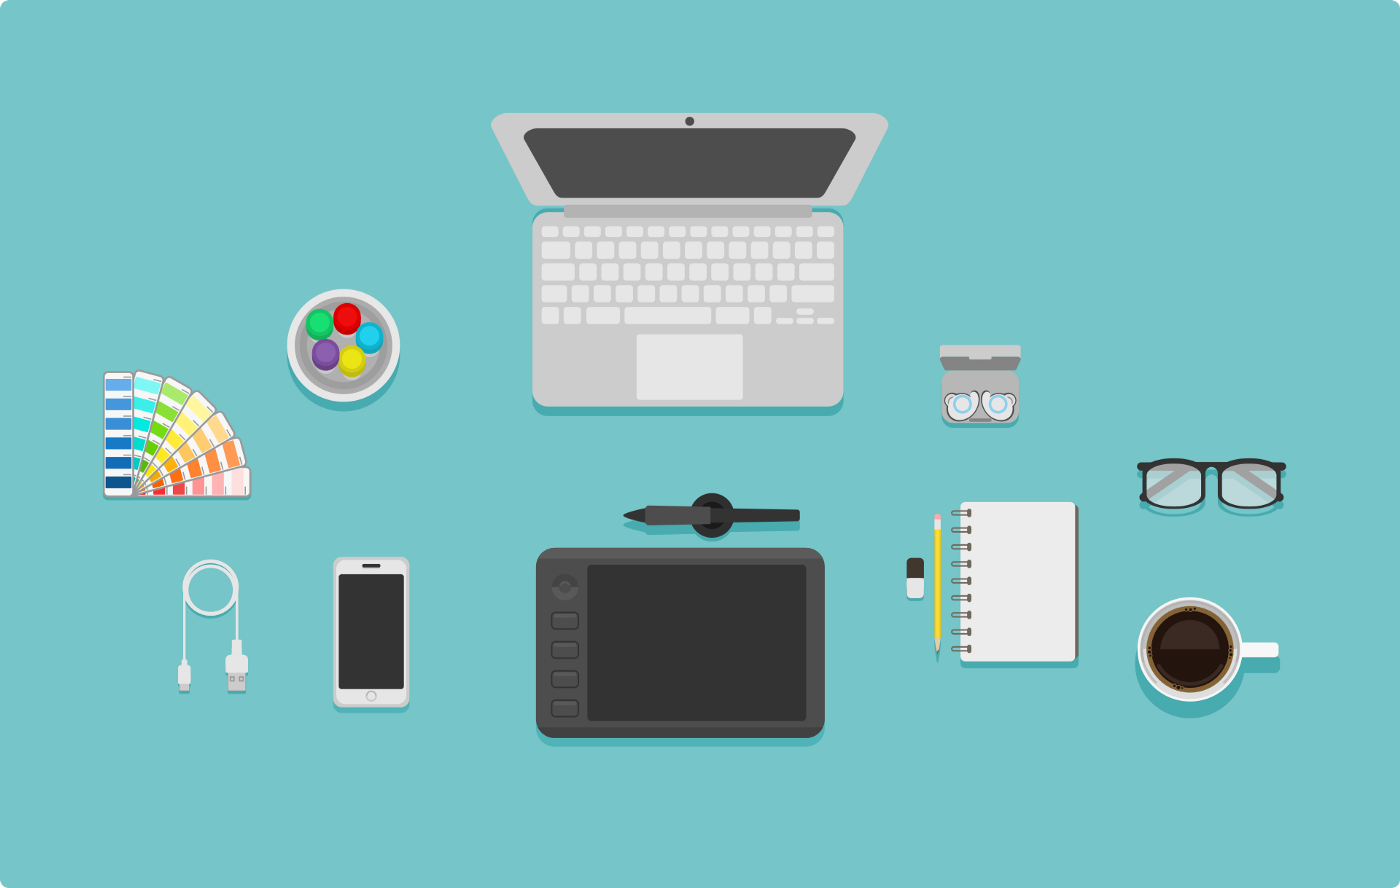 Digital Accessories Vector Image by Md Easin Alif